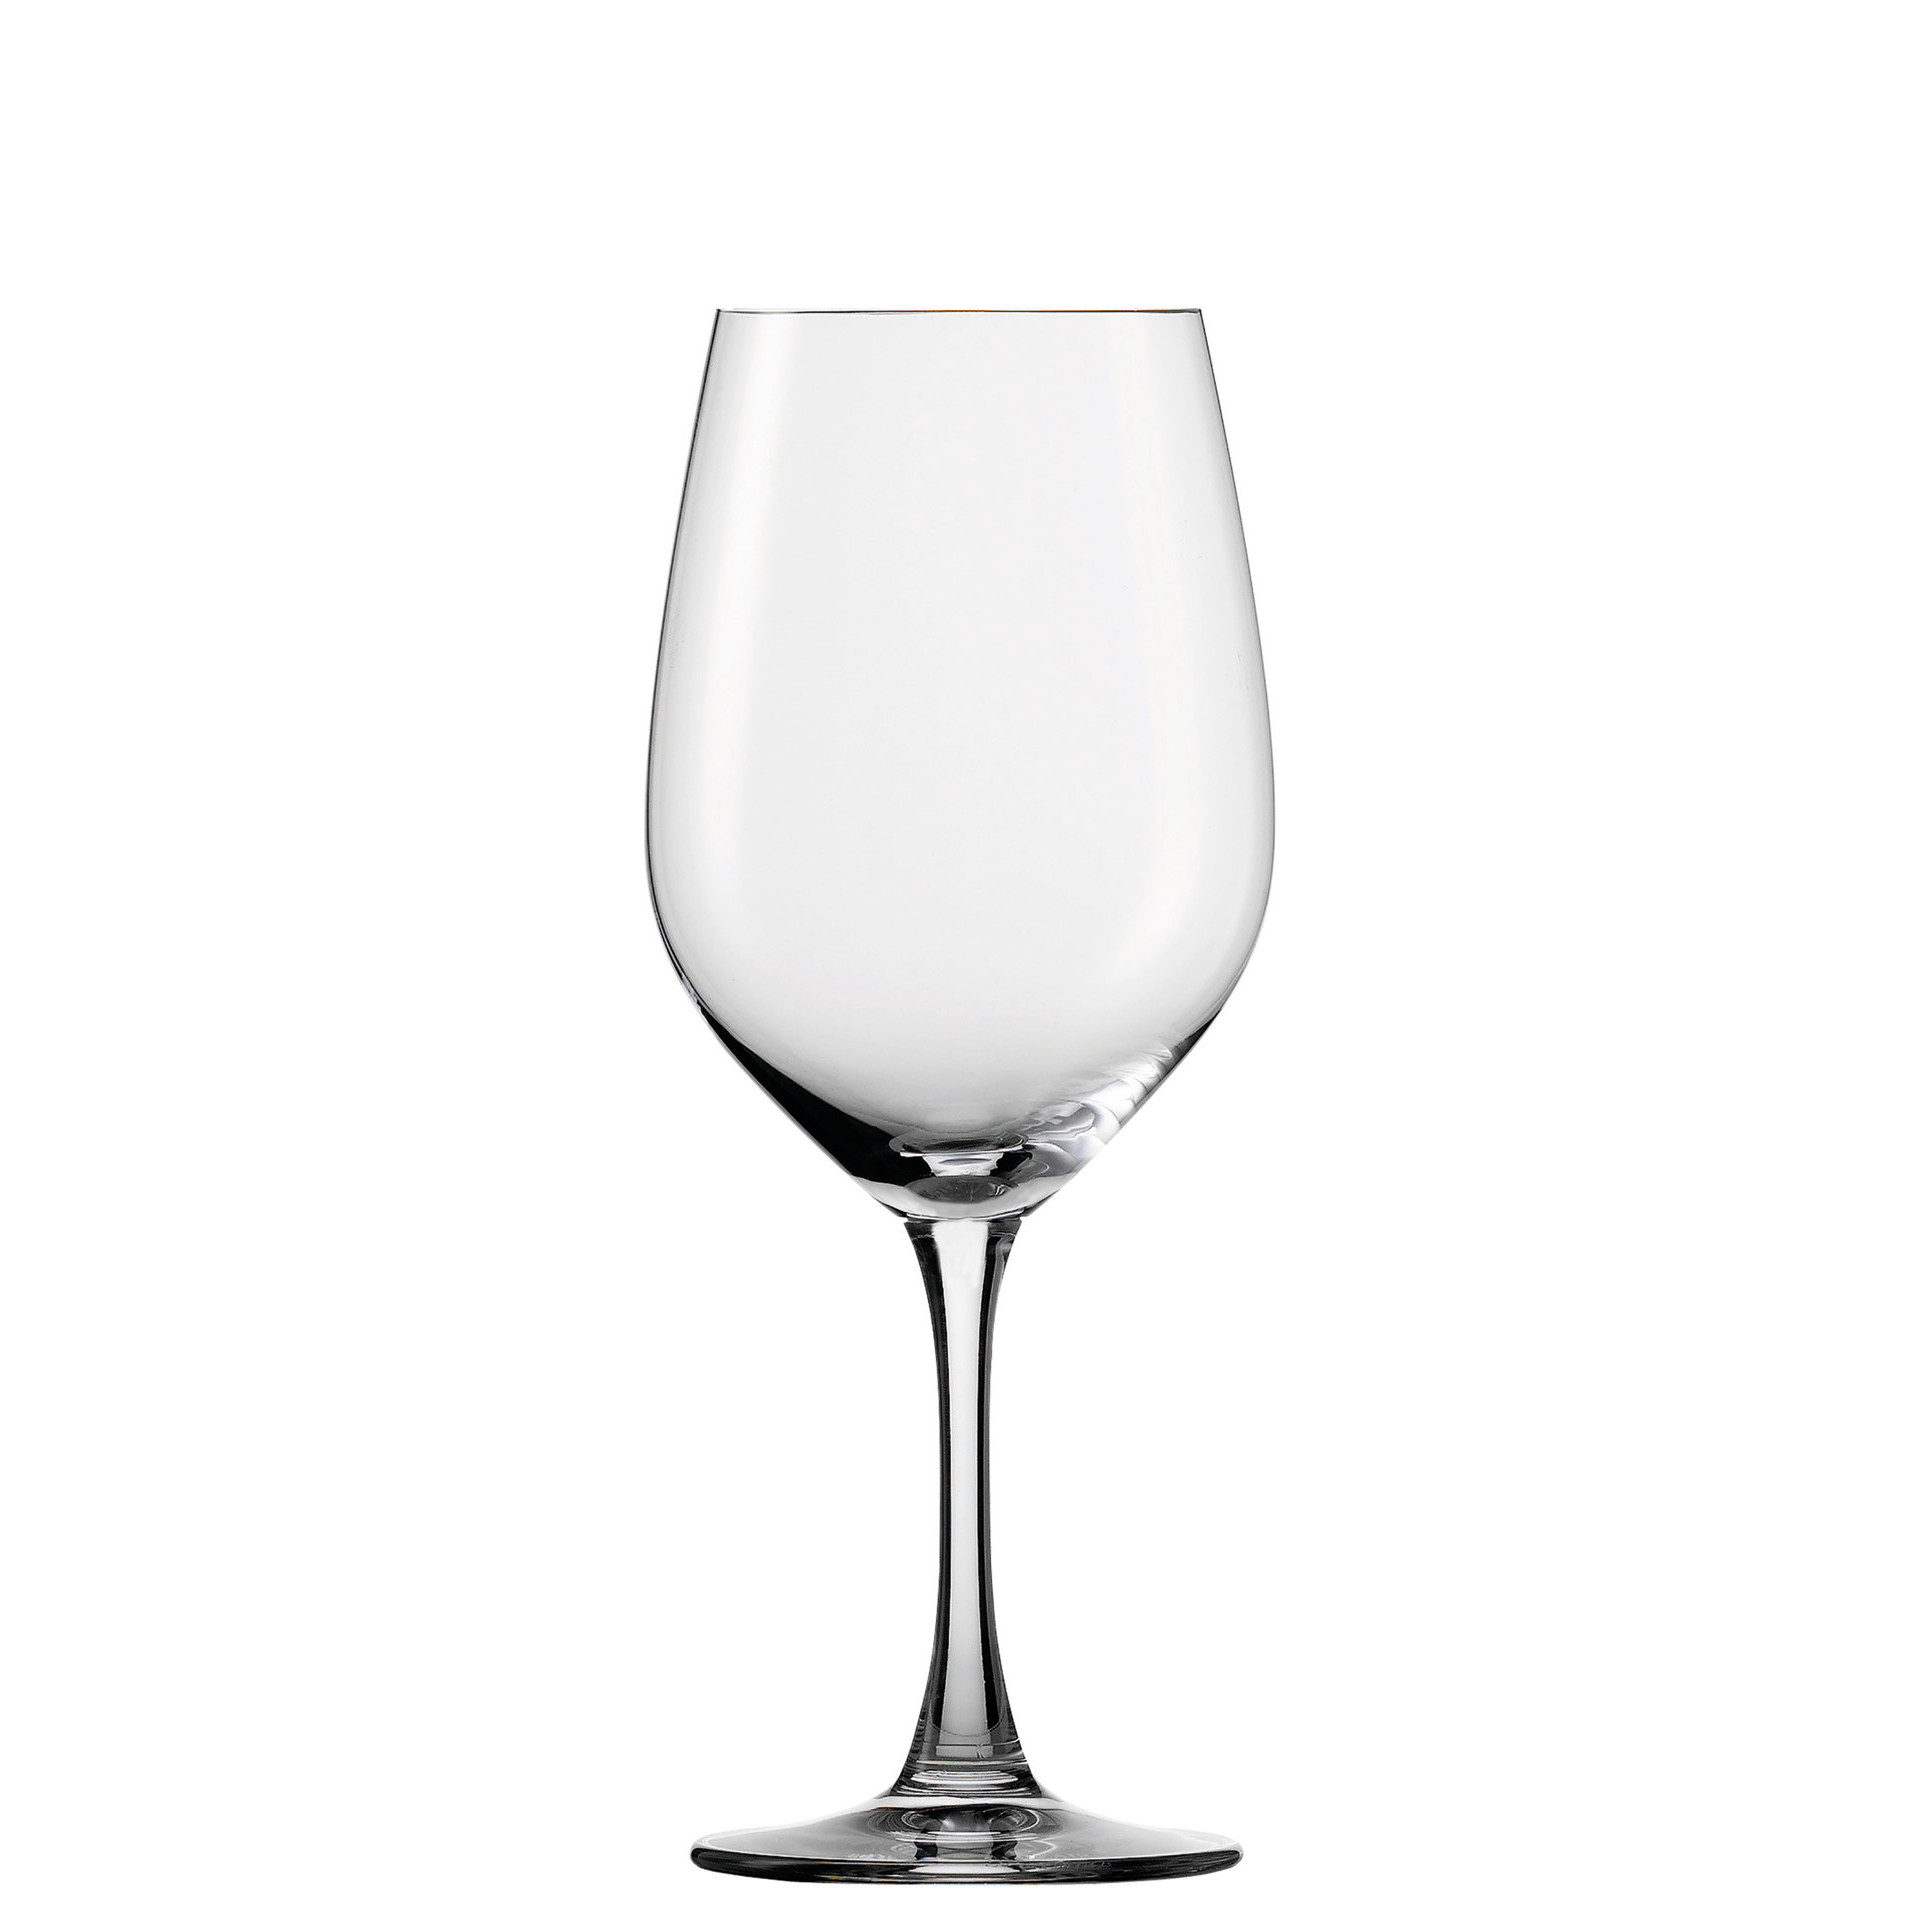 Winelovers, Rotweinglas Magnum ø 92 mm / 0,58 l